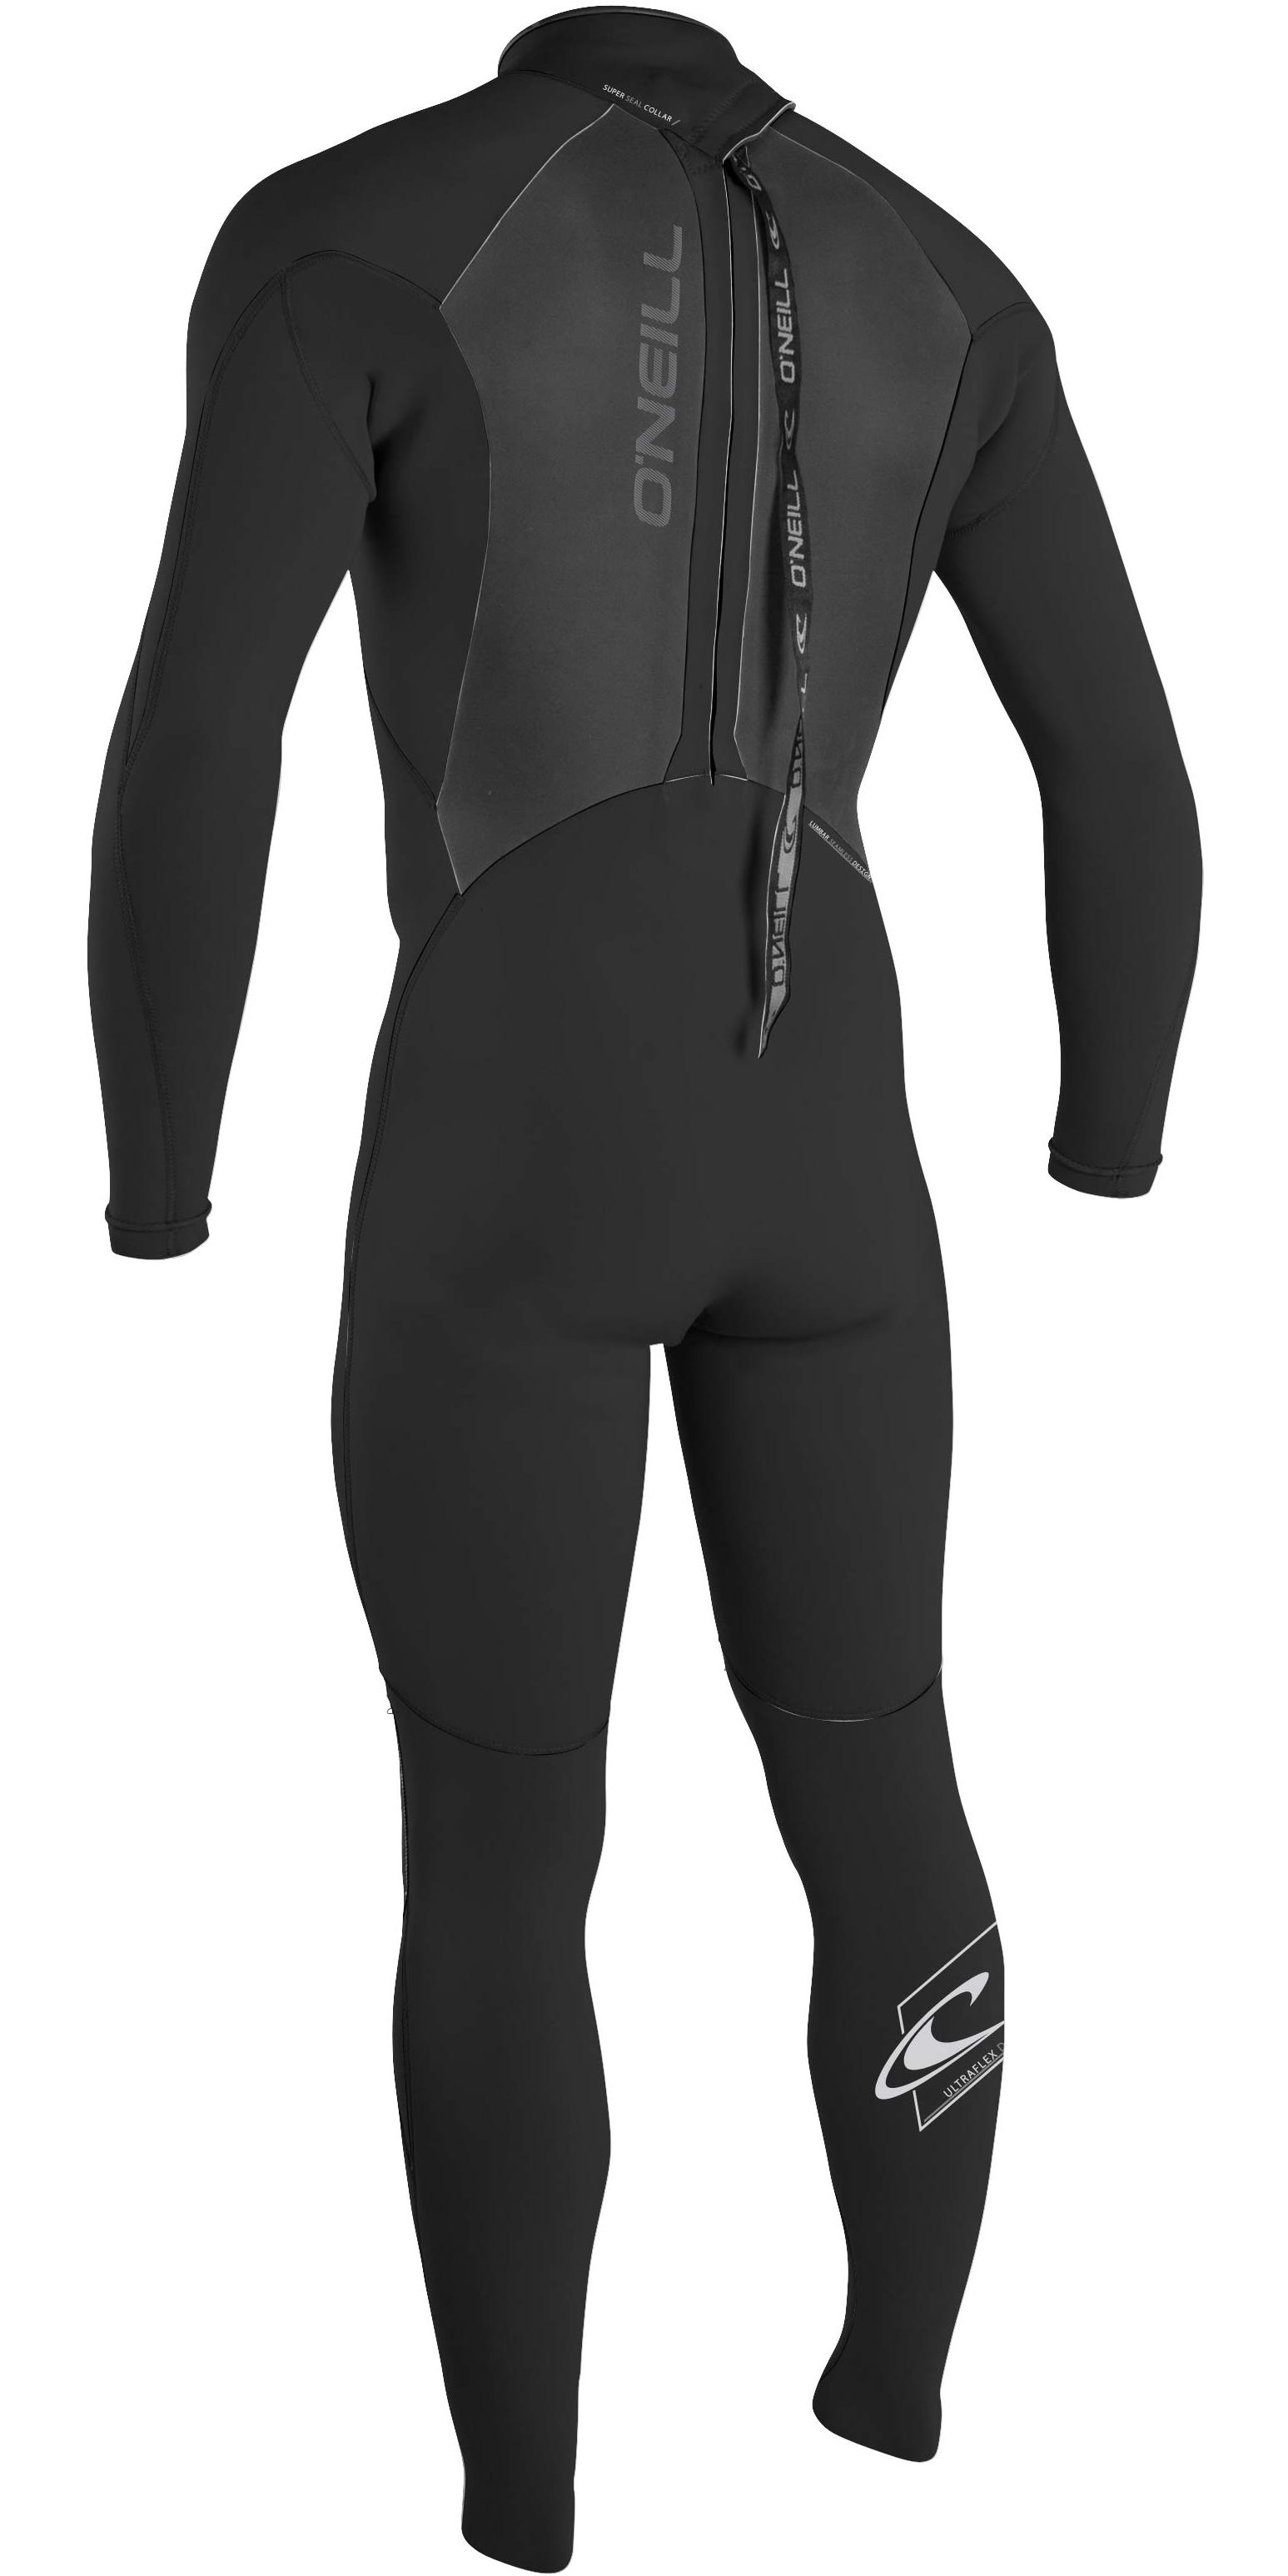 2019 Oneill Epic 5 4mm Back Zip Gbs Wetsuit Black 4217 - 4217 - Mens ... d5fb4438092